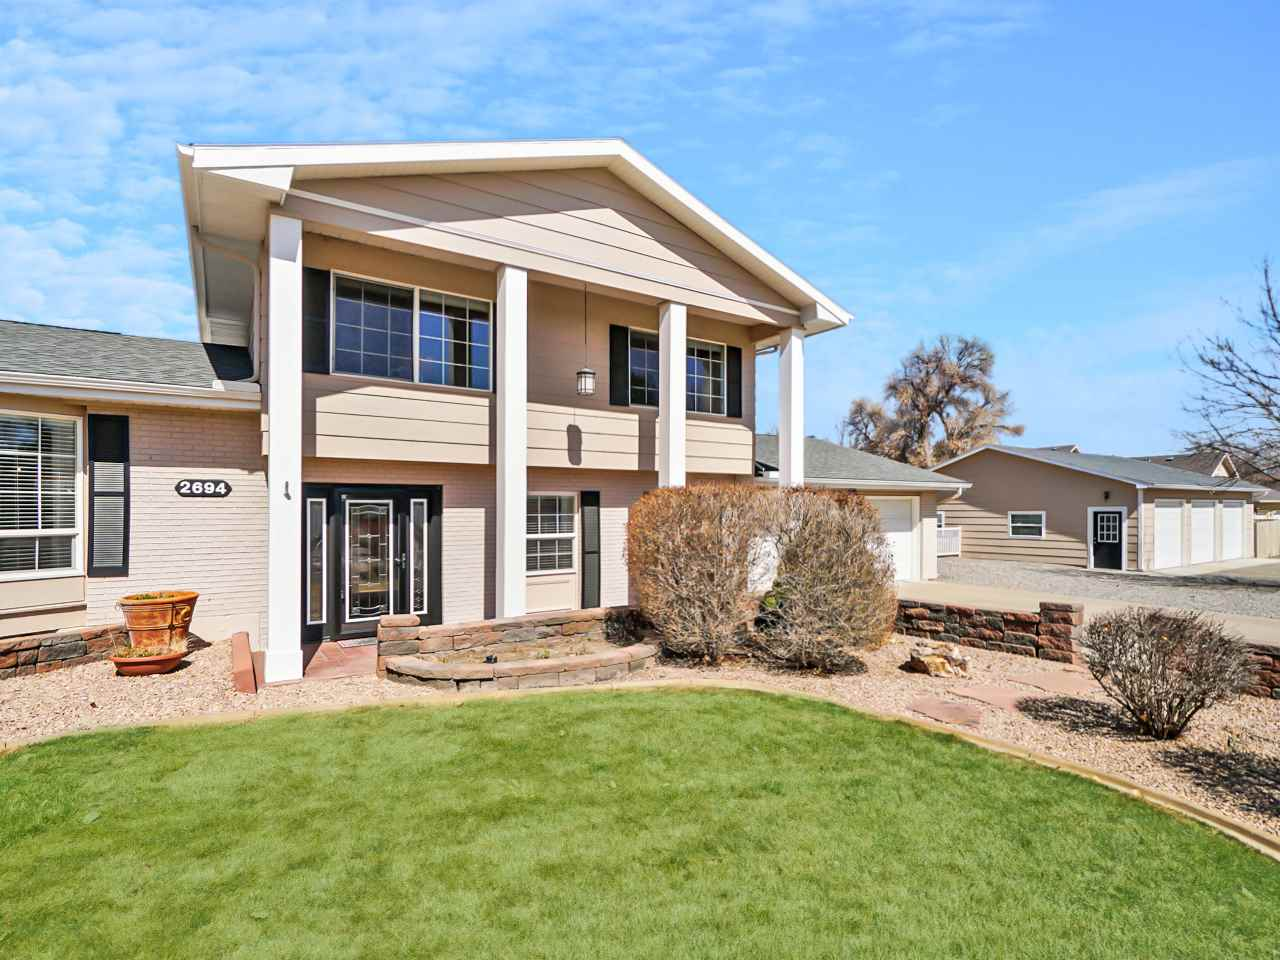 2694 Kimberly Drive Property Photo - Grand Junction, CO real estate listing